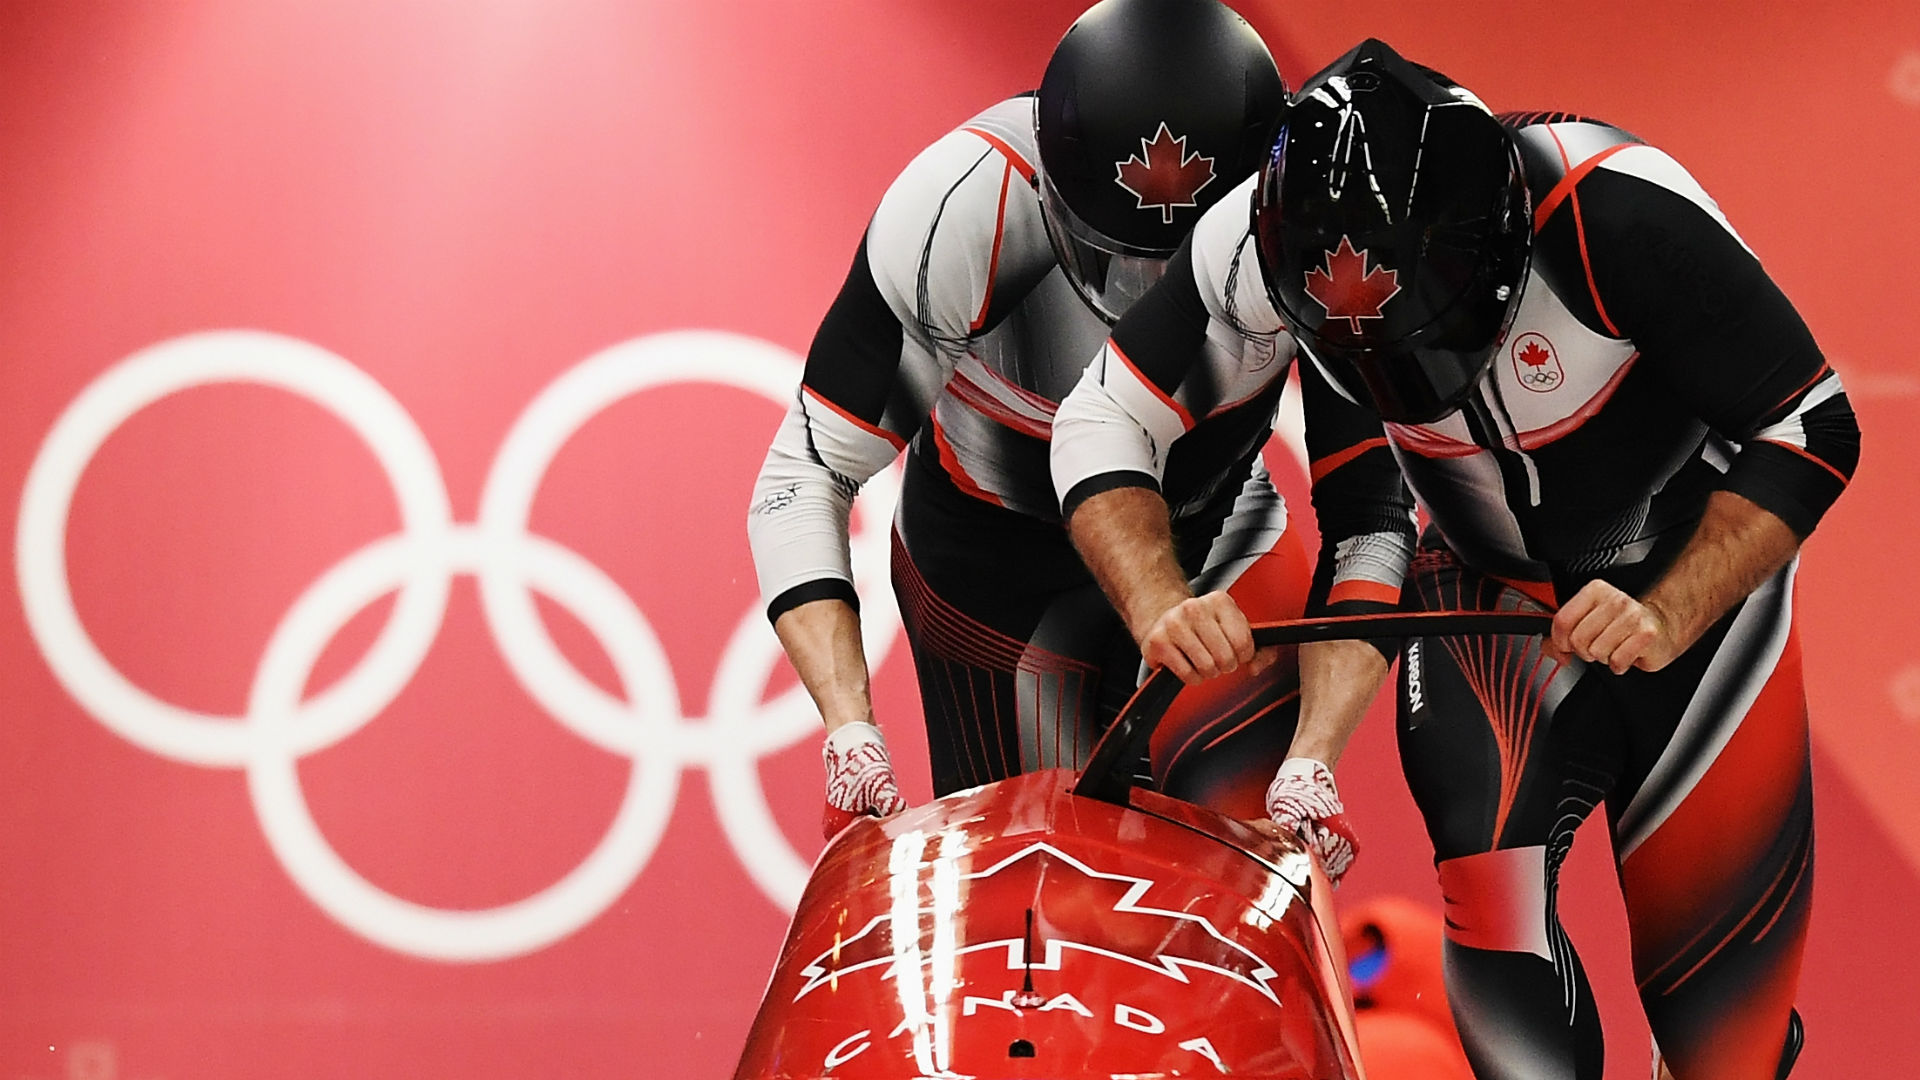 Hawaii-born Canadian among winners of 2-man bobsled gold